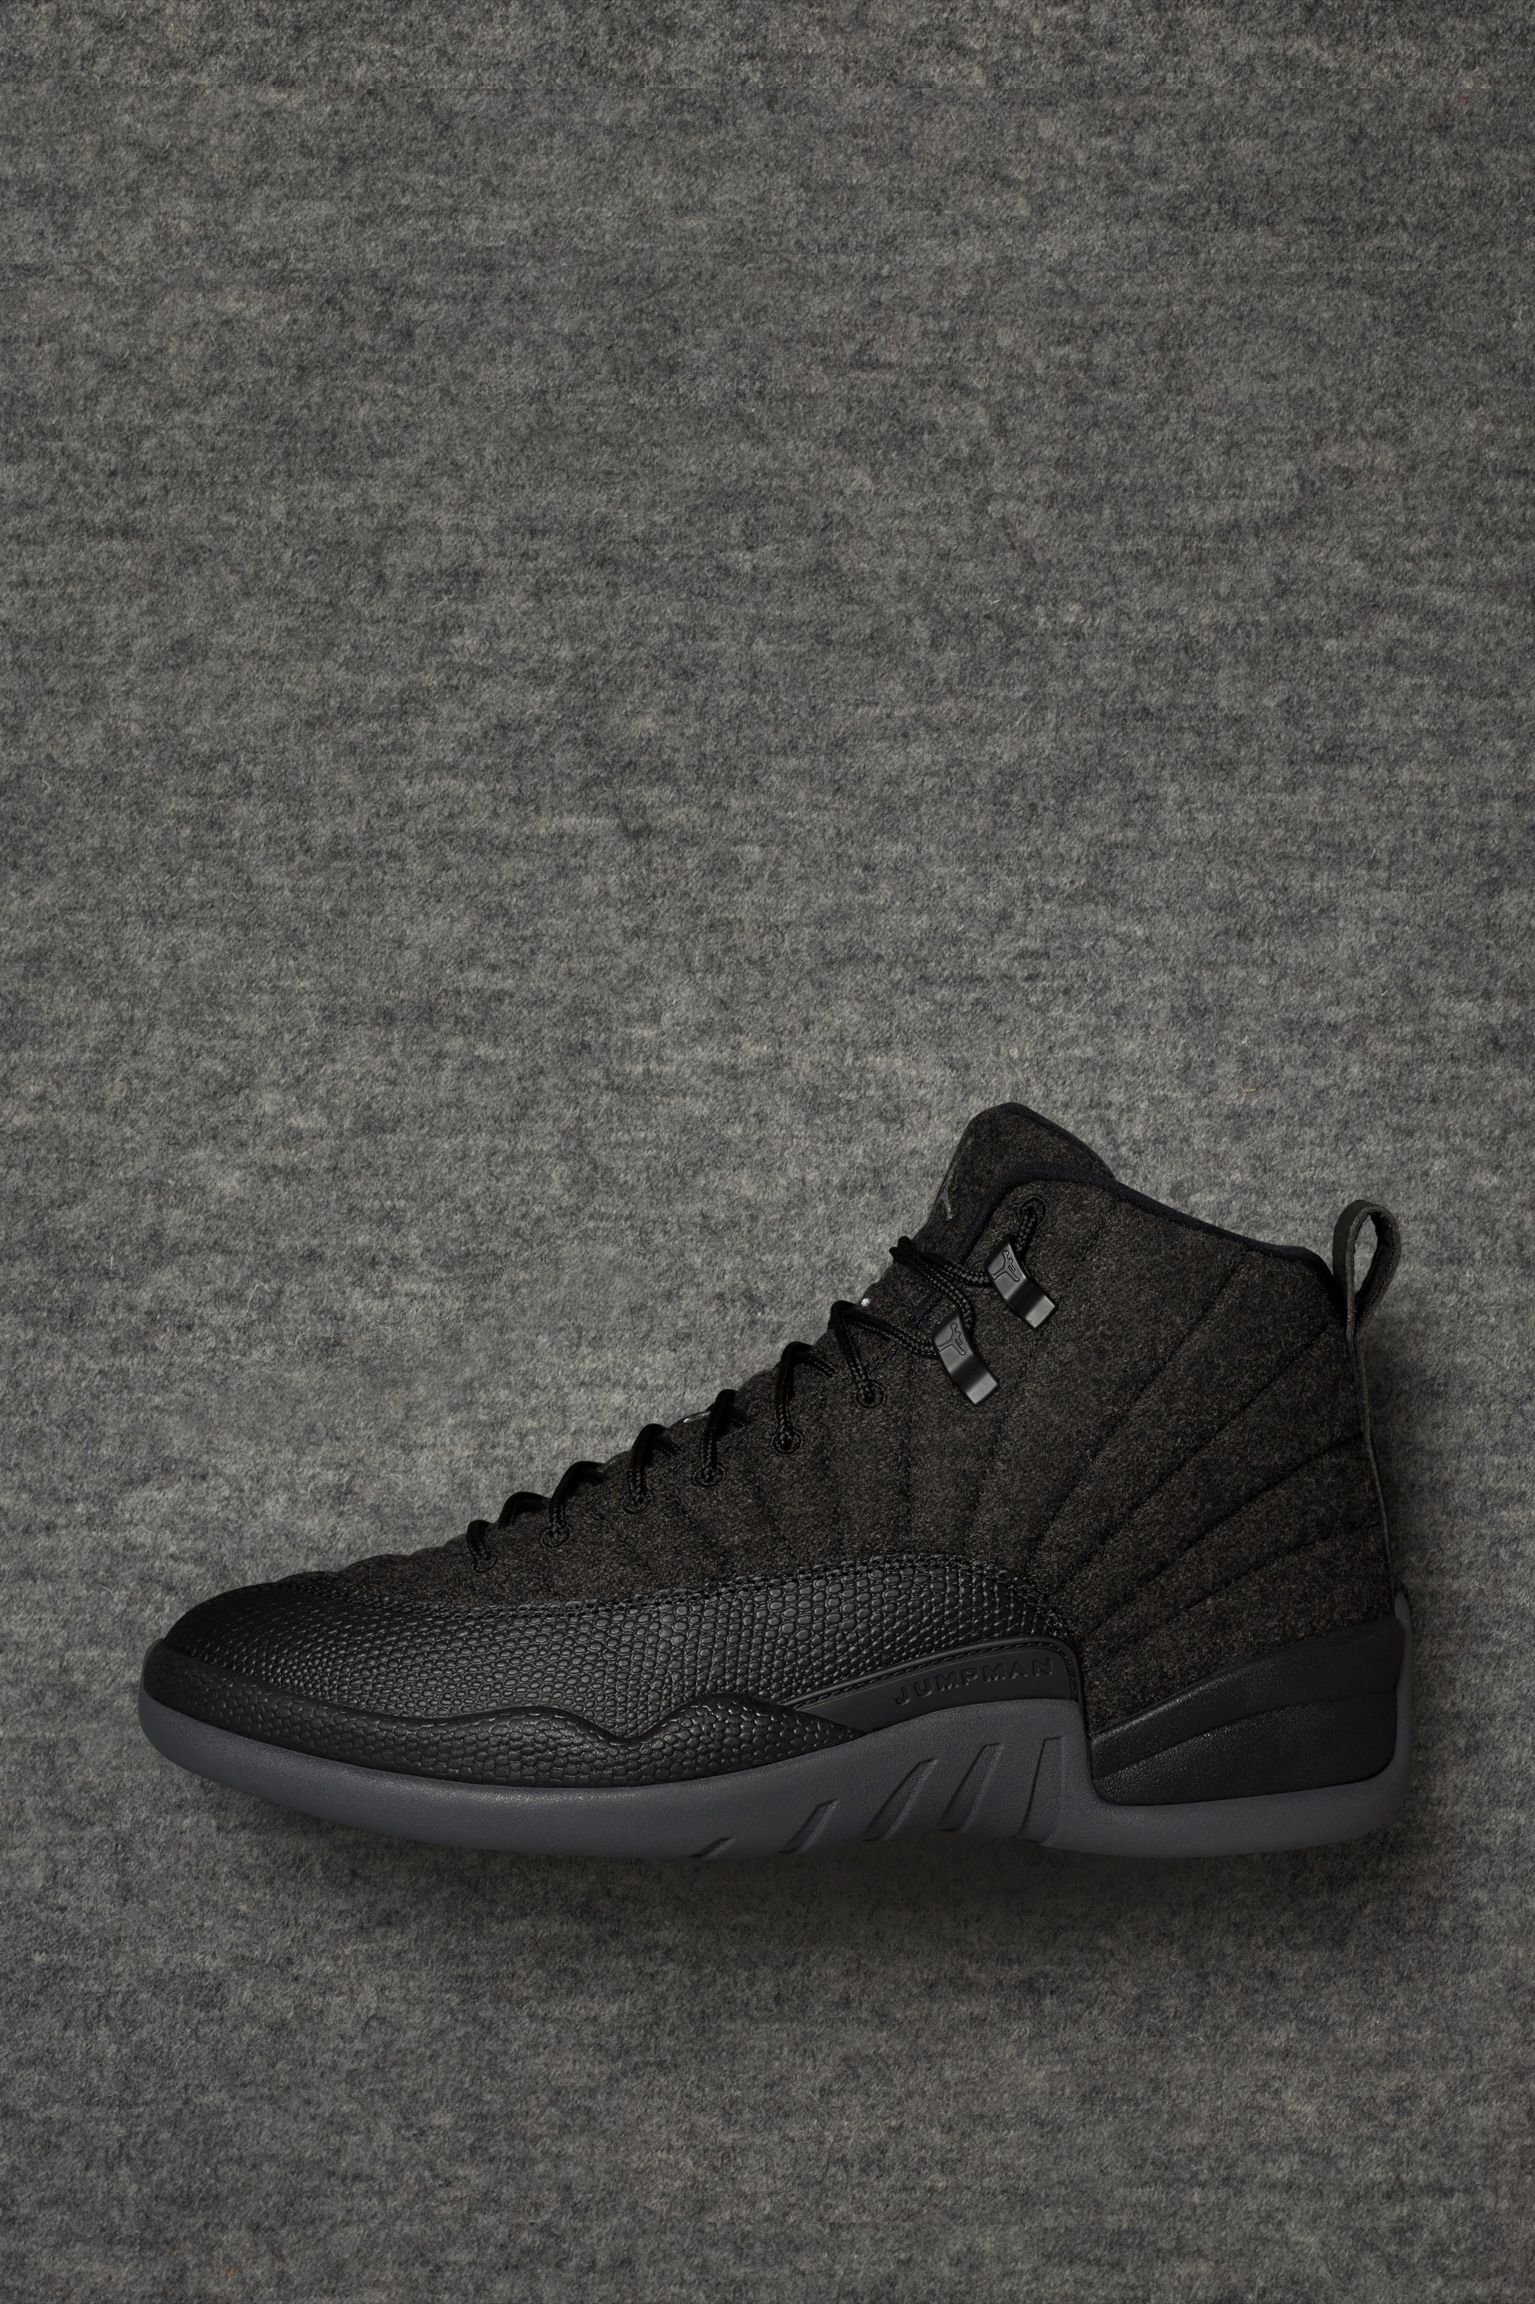 best service 466b5 0d4b2 Air Jordan 12 Retro Wool 'Dark Grey & Black' Release Date ...